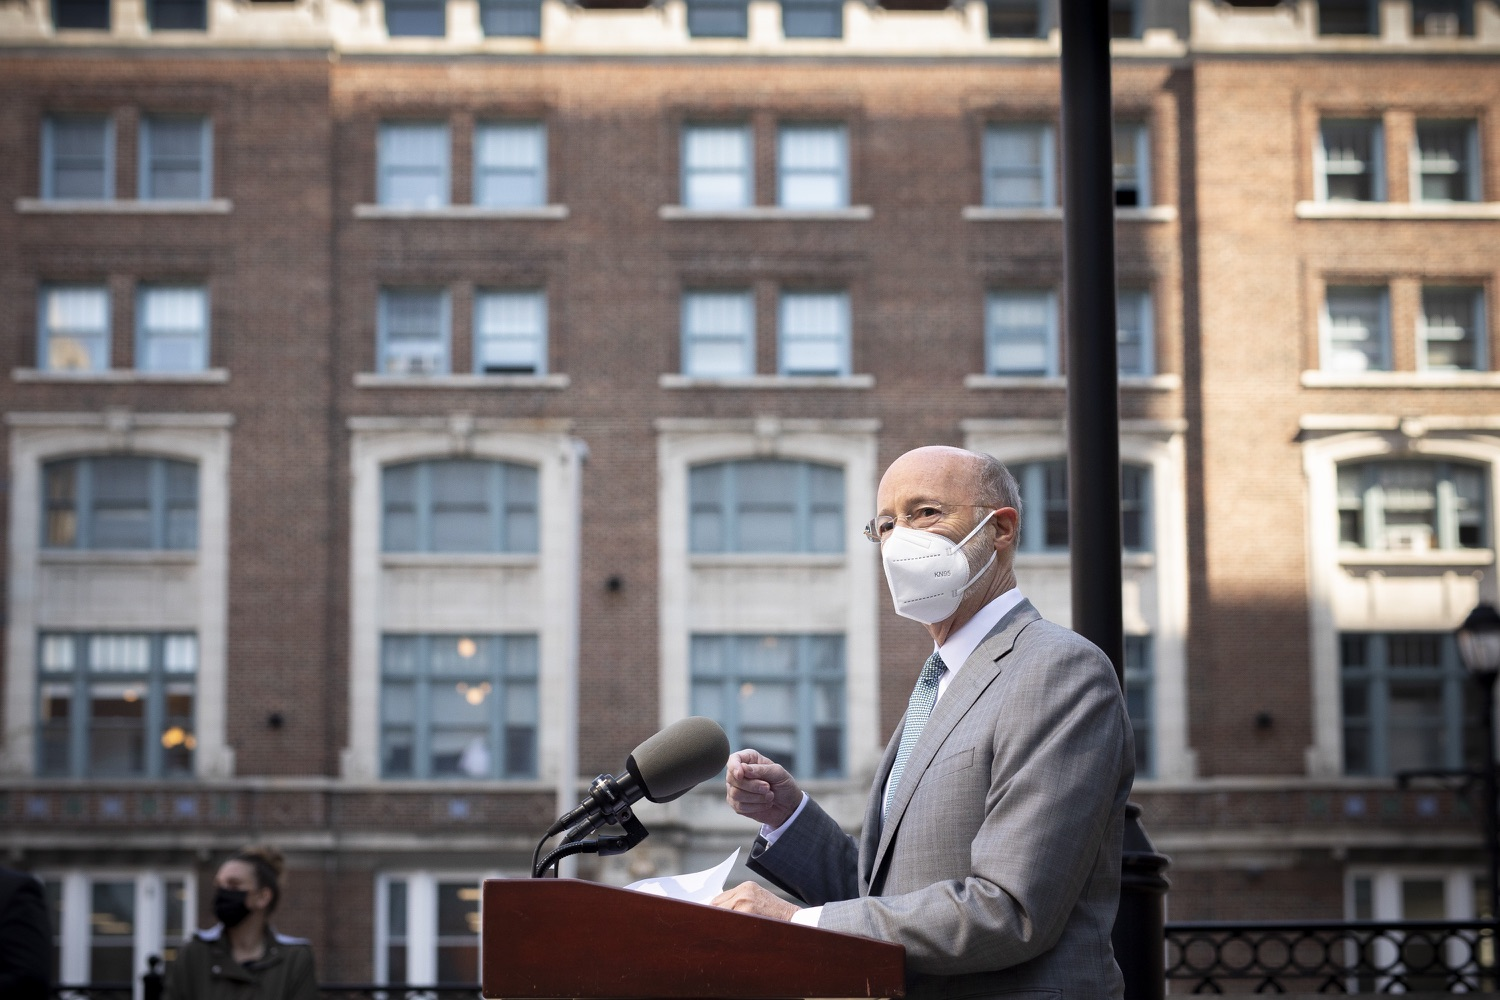 """<a href=""""https://filesource.wostreaming.net/commonwealthofpa/photo/18688_gov_vaccines_dz_020.jpg"""" target=""""_blank"""">⇣Download Photo<br></a>Pennsylvania Governor Tom Wolf speaking with the press.  As Pennsylvania continues its accelerated COVID-19 vaccination plan, Pennsylvanians who are not able to leave their homes must be reached, and various state agencies and community groups are helping. Governor Tom Wolf visited Reading to talk about how the state and its partners are using various means to reach people not able to leave home to be vaccinated against COVID-19.  APRIL 26, 2021 - READING, PA"""